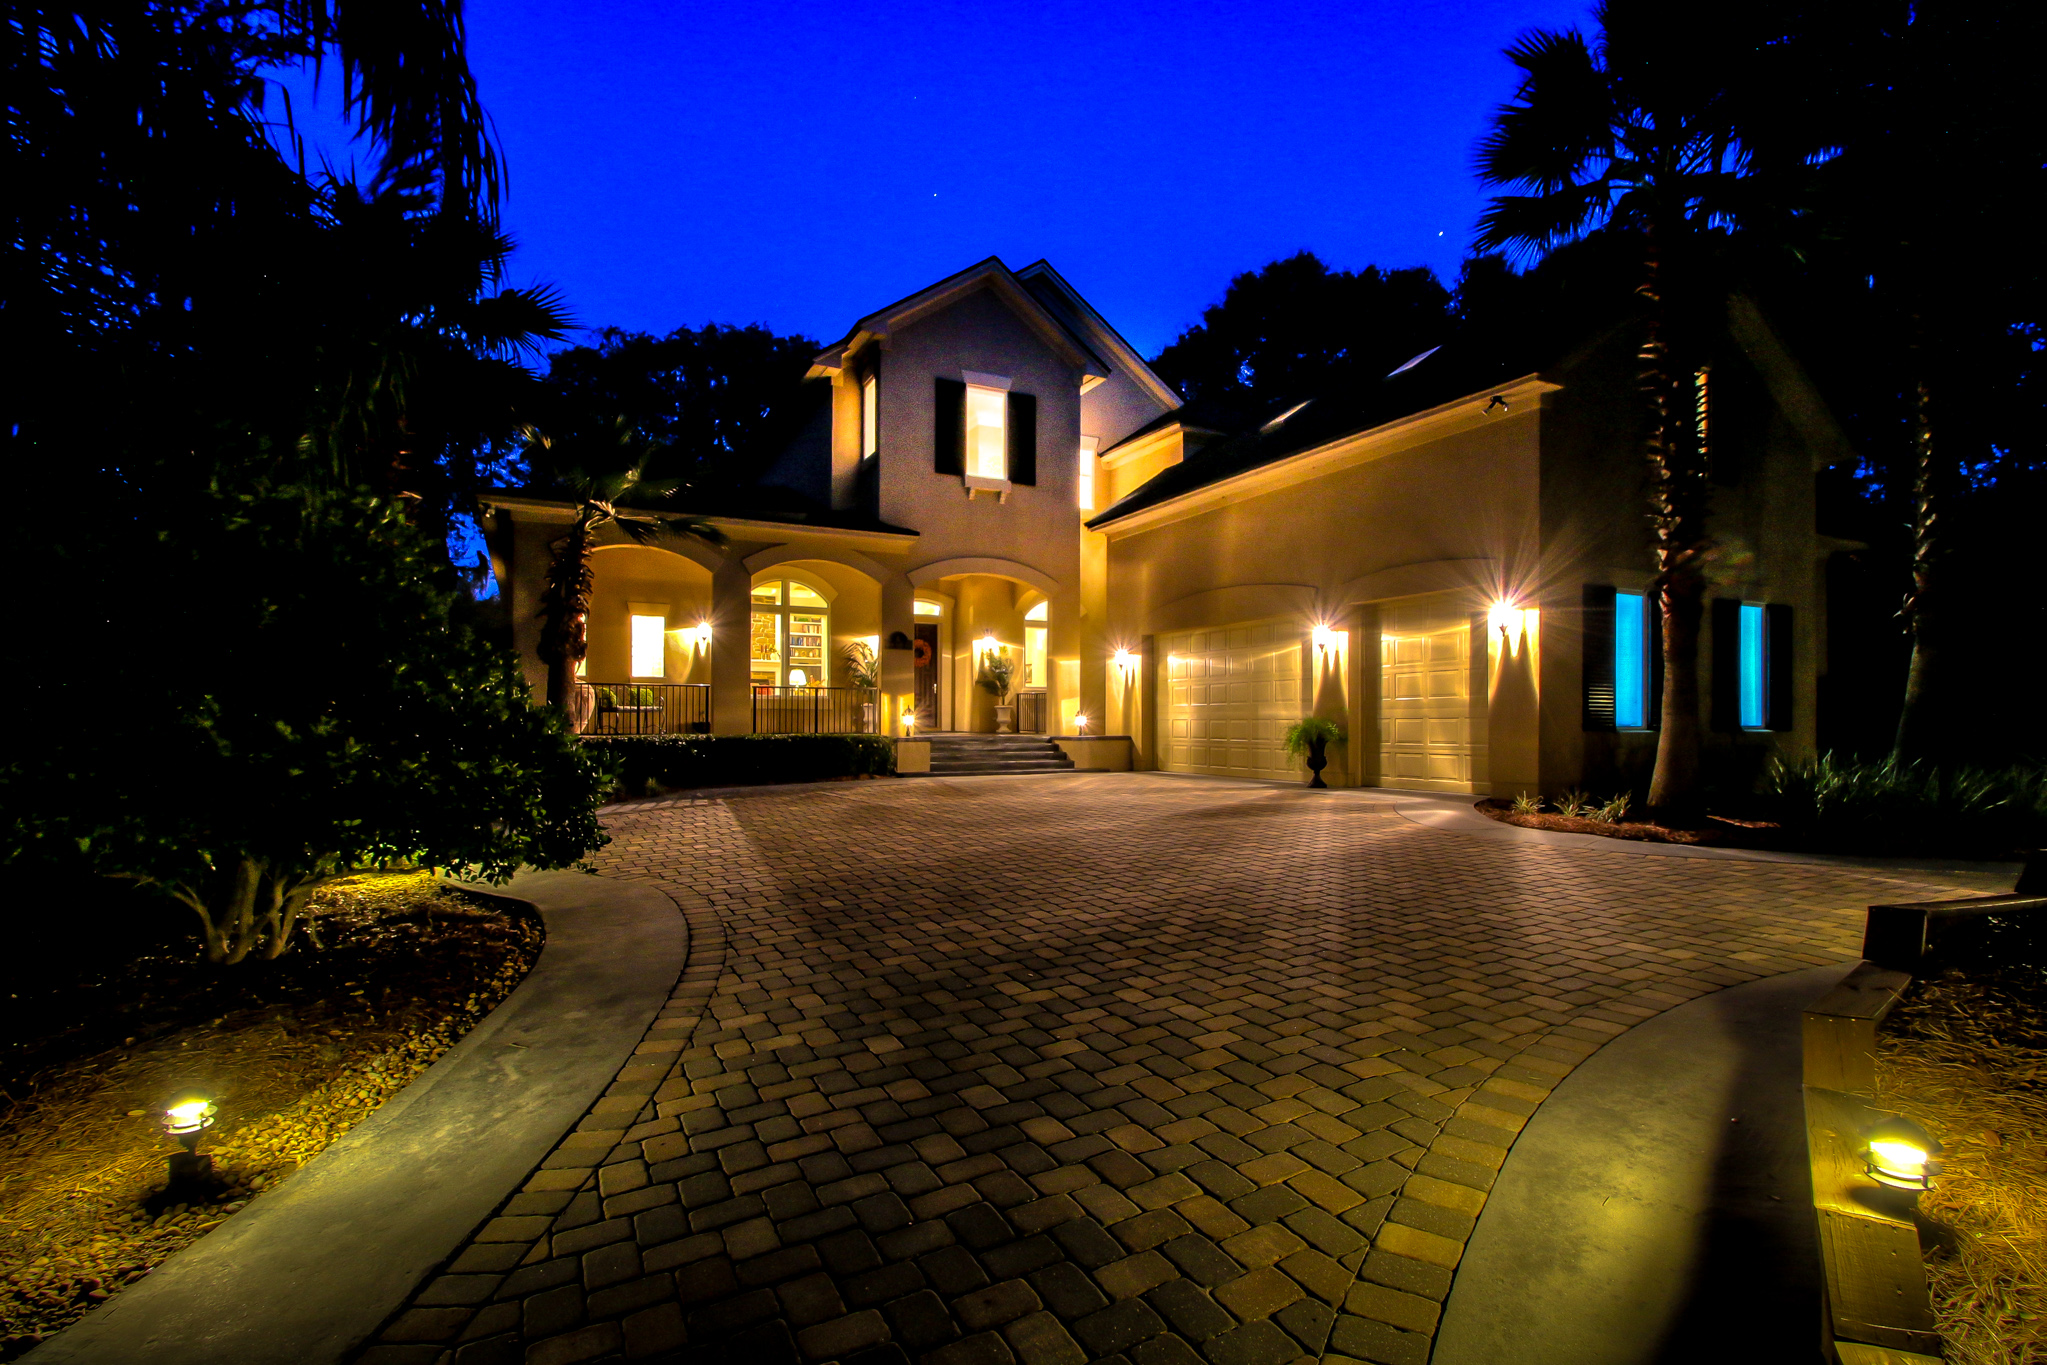 Moradia para Venda às Exceptional Fairway Views from Custom Built Home 6 Marsh Creek Road Amelia Island, Florida, 32034 Estados Unidos